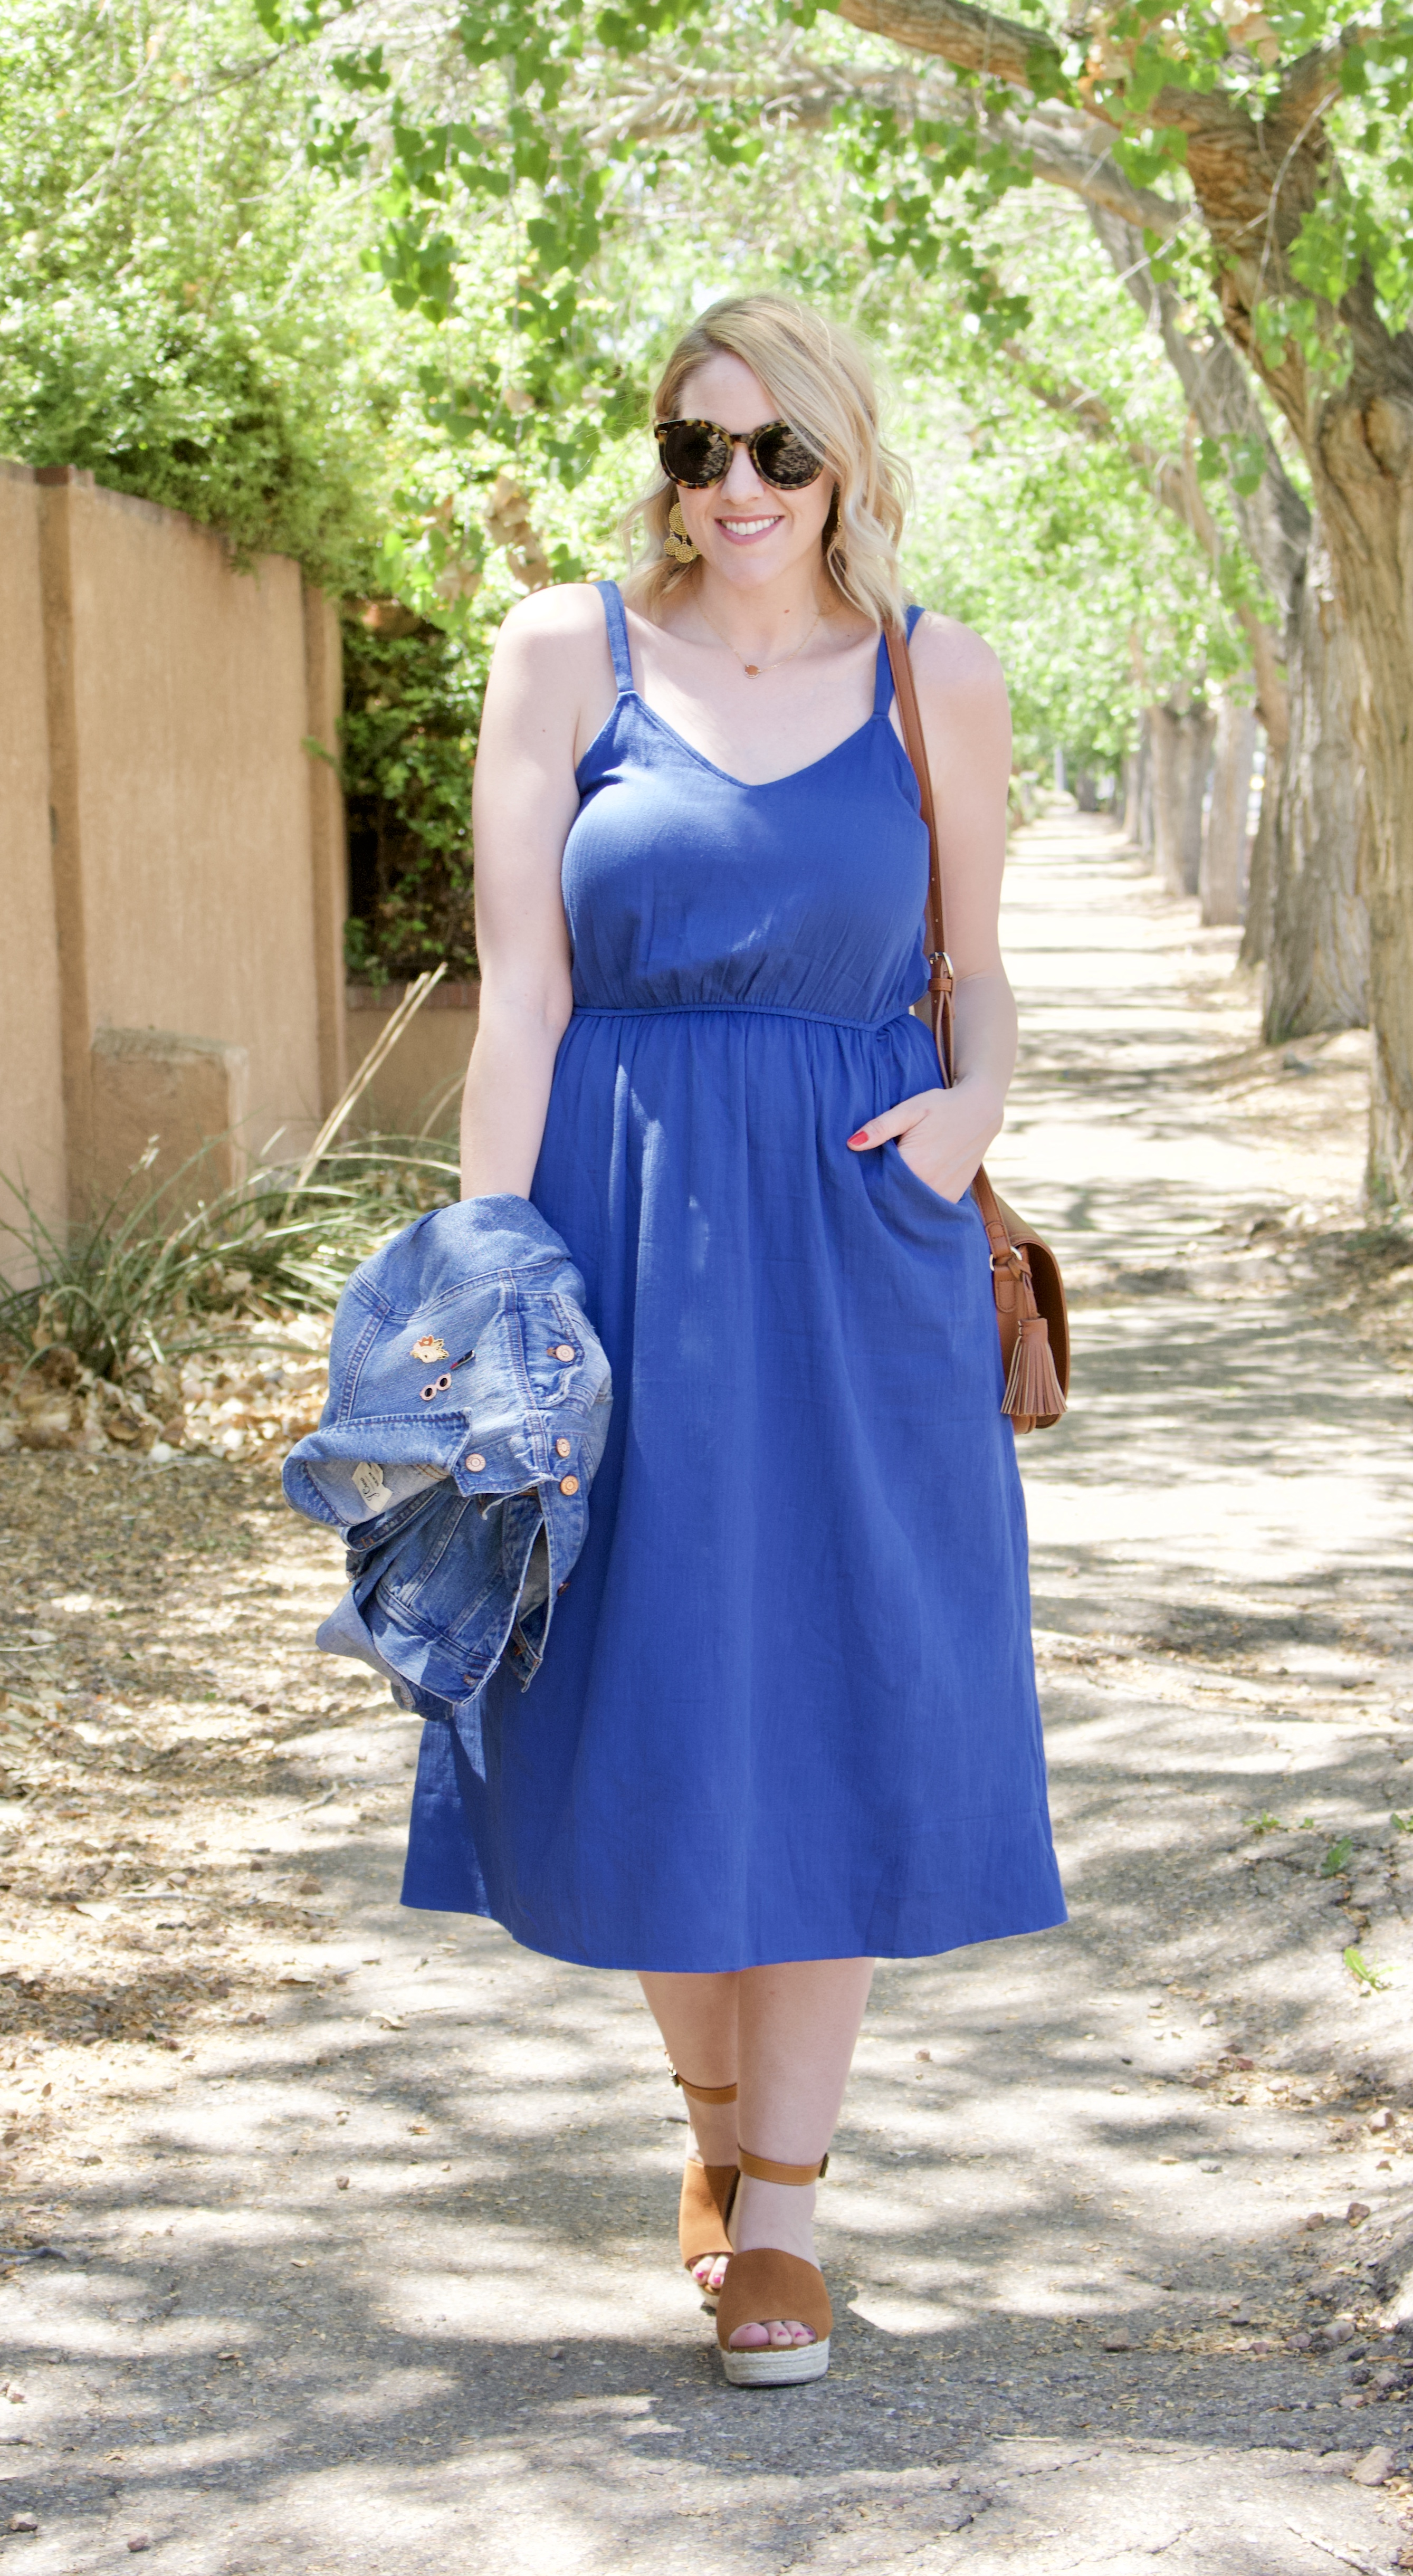 blue midi dress for mother's day #dress #springdress #mididress #tallfashion